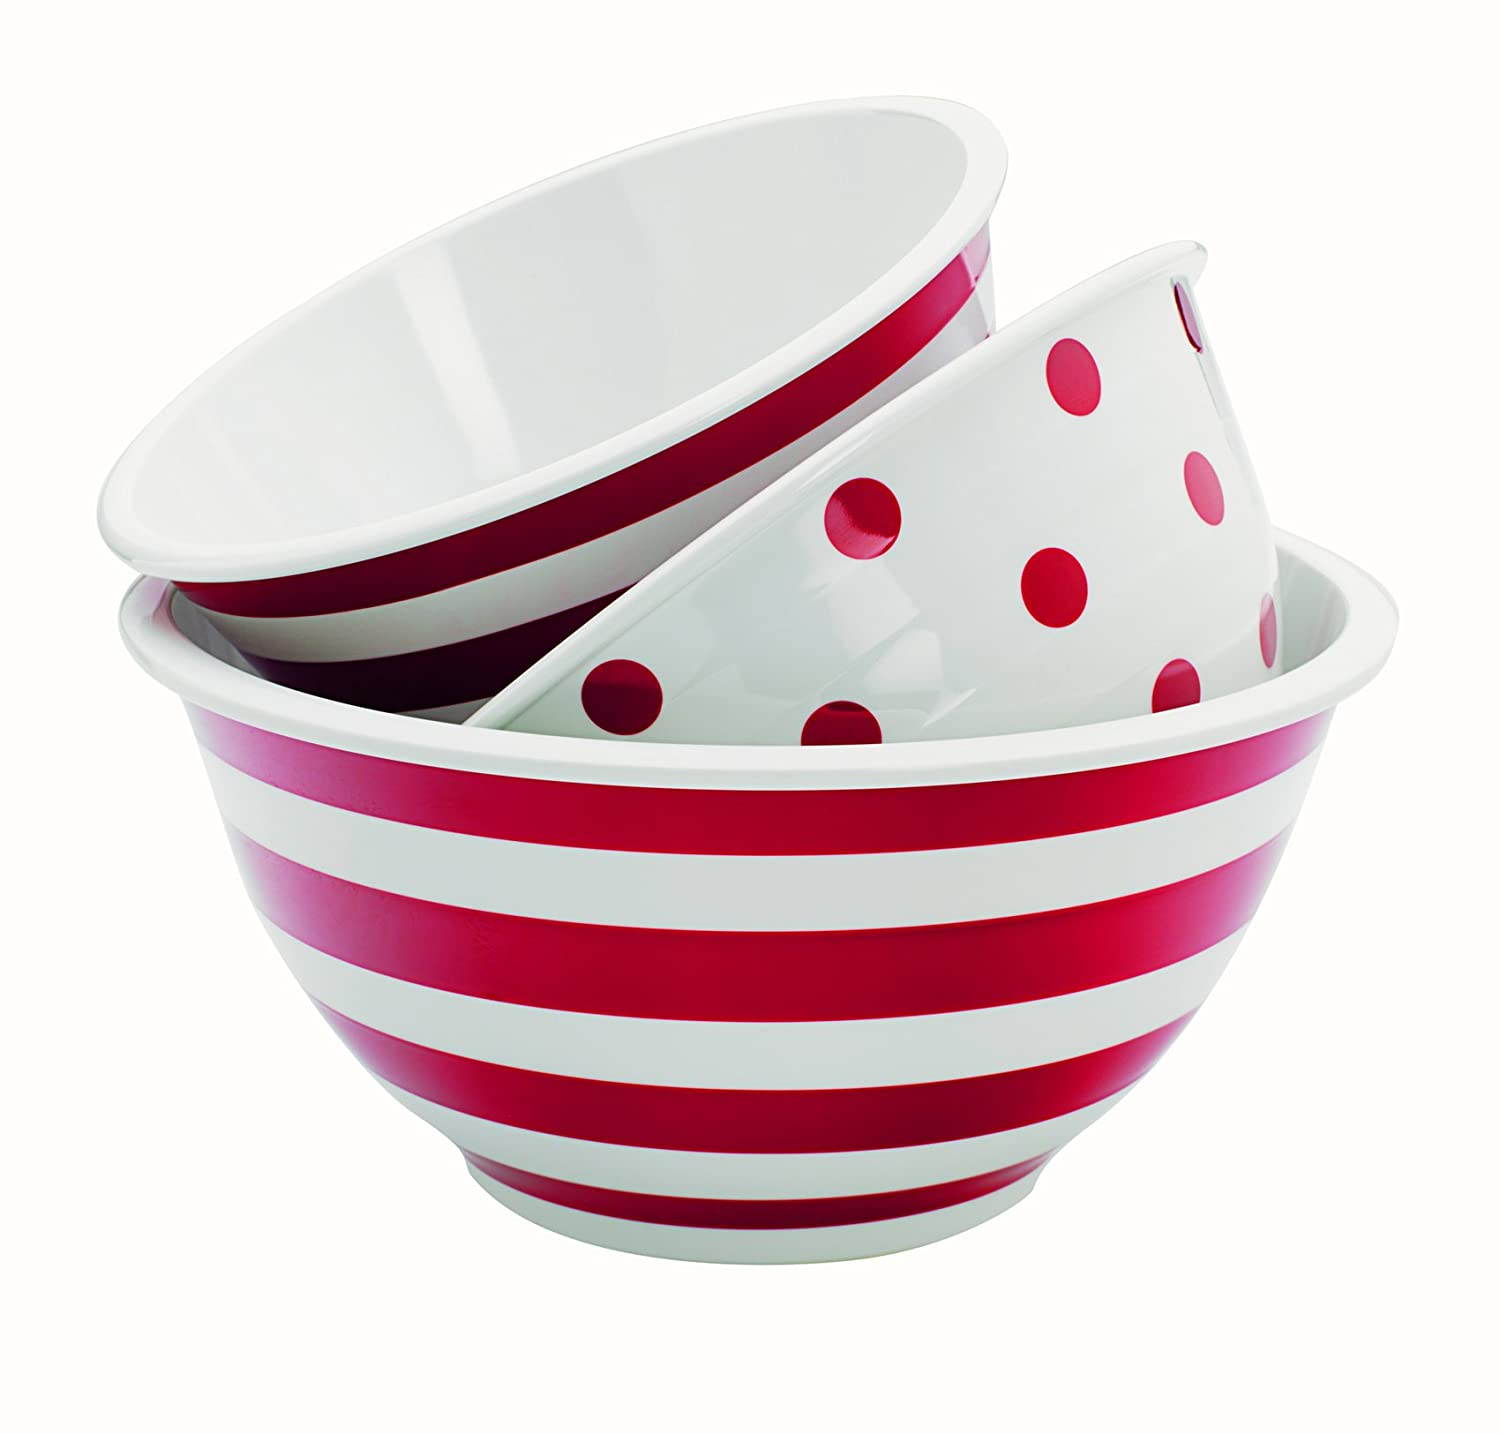 Anchor Hocking mixing bowls - Valentine's Day Gift Guide for the Cook www.pinchofnutmeg.com